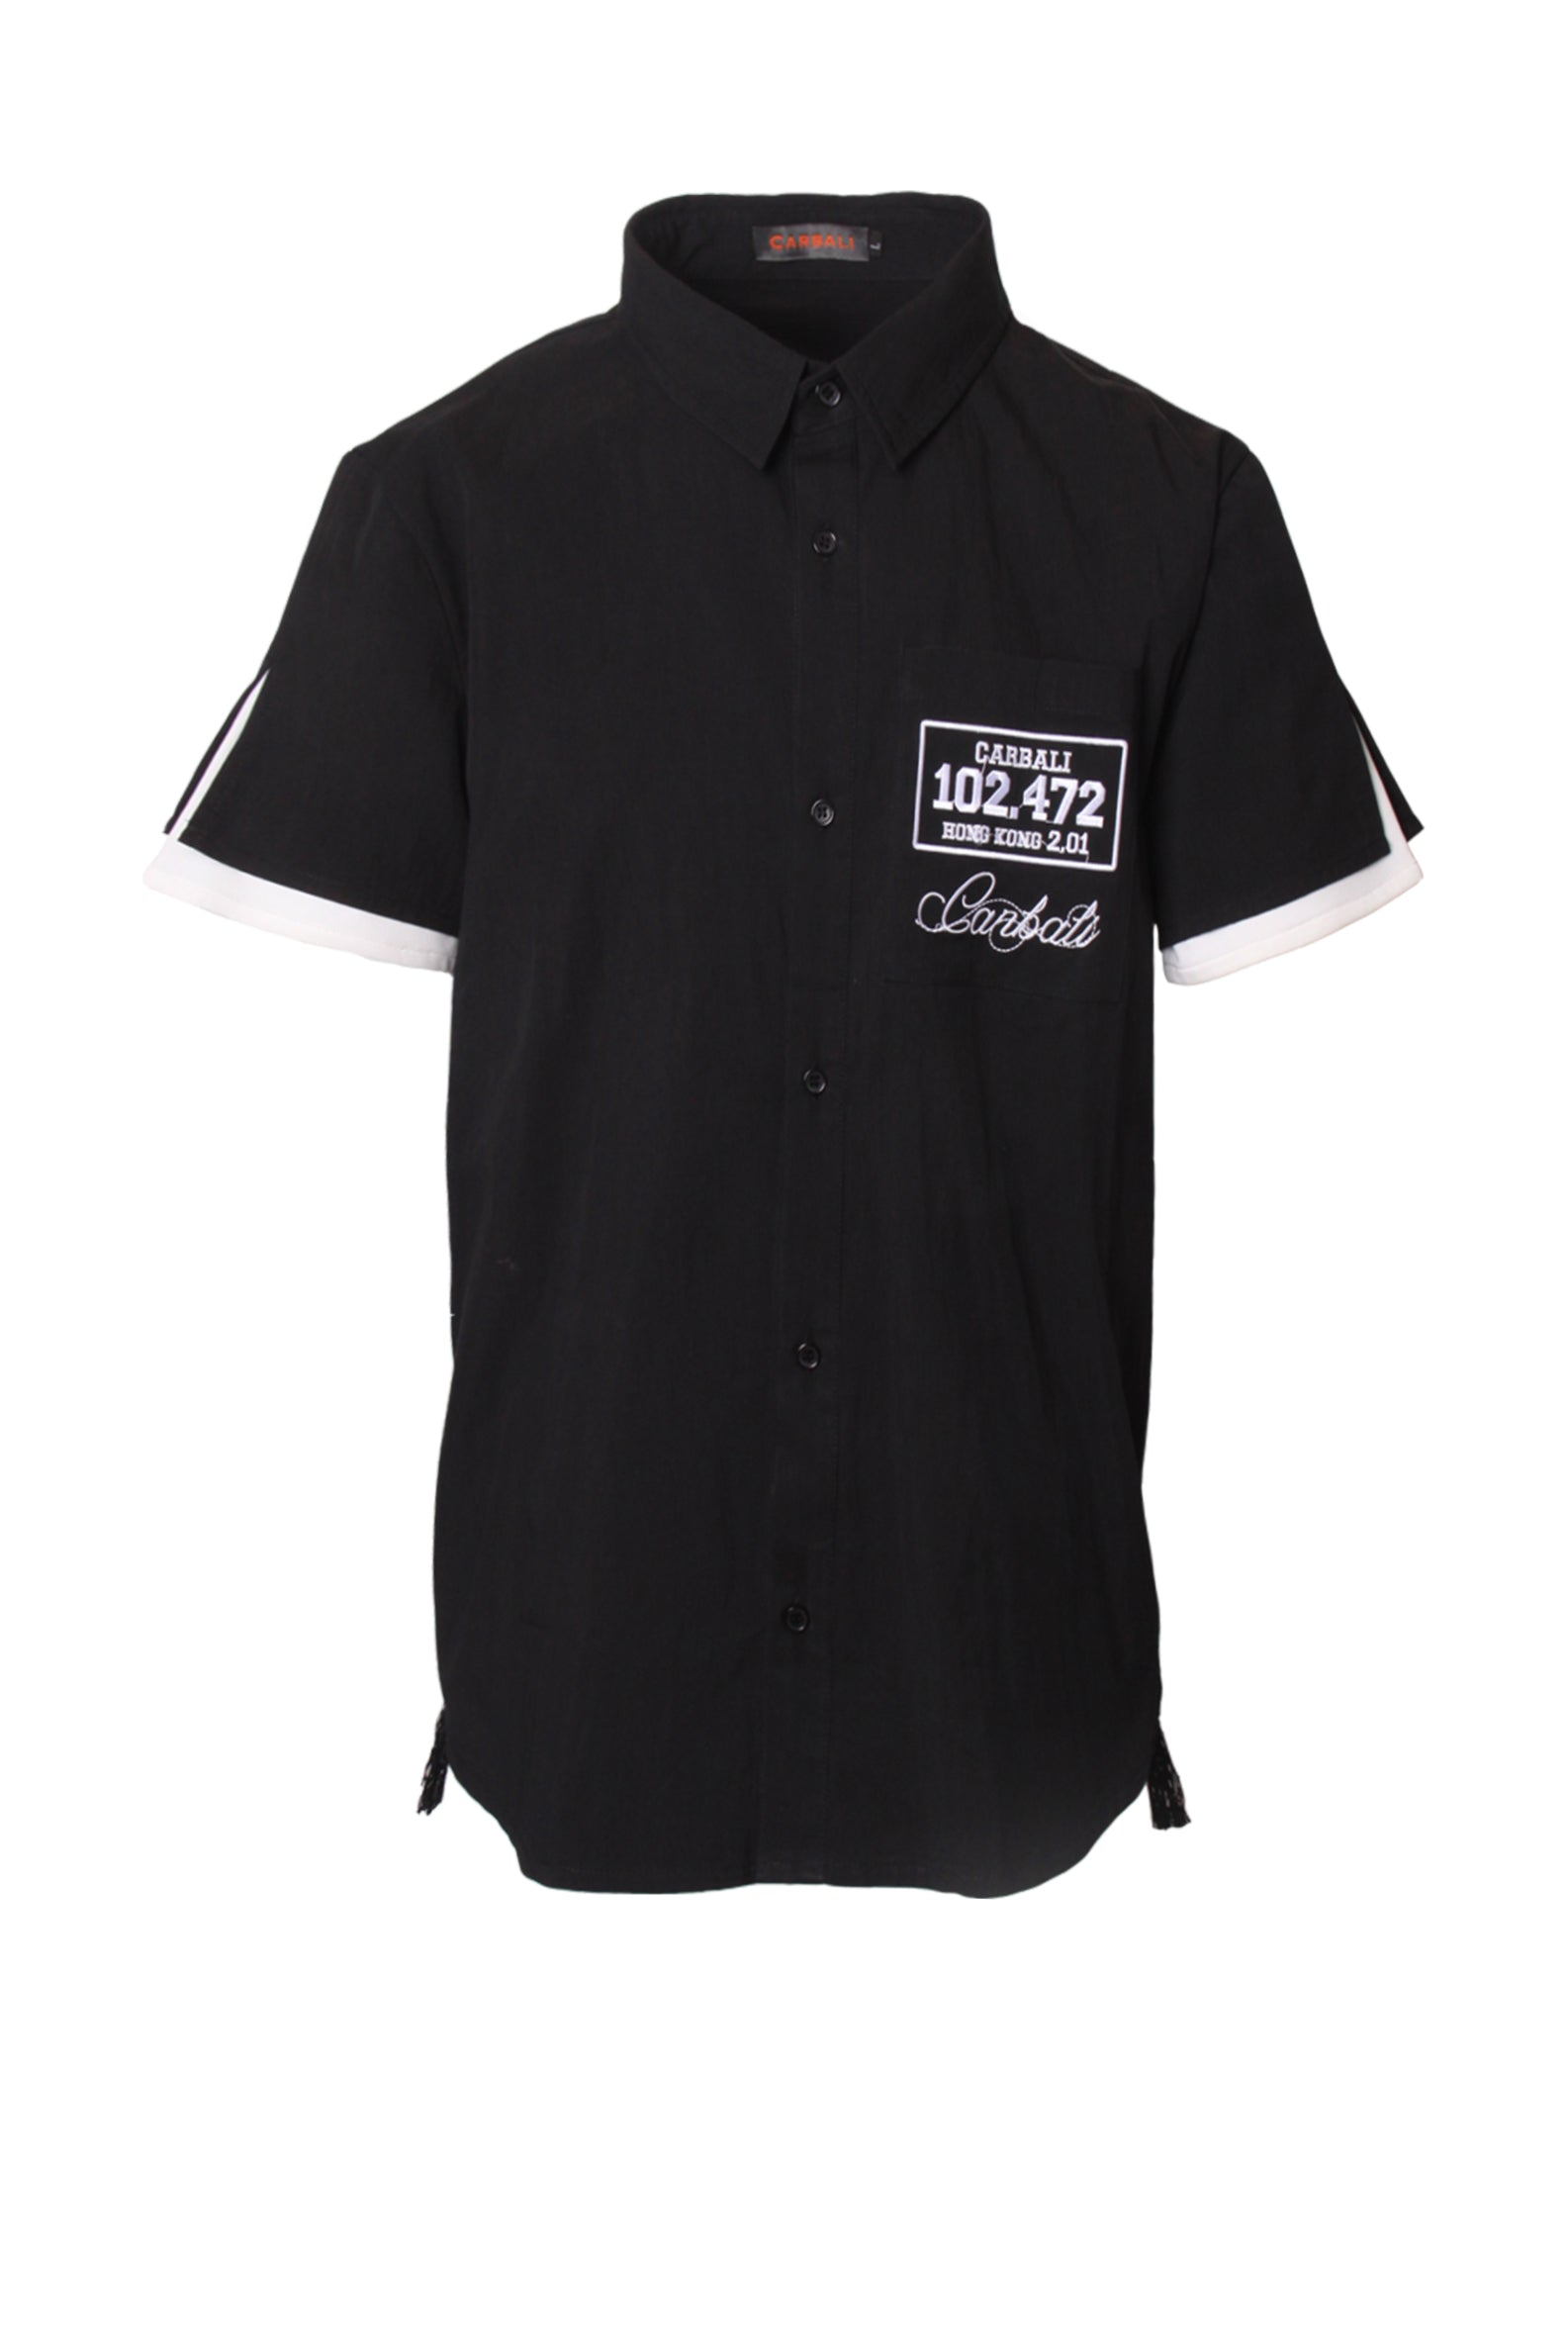 Carbali Menswear shirt with embroidered logo